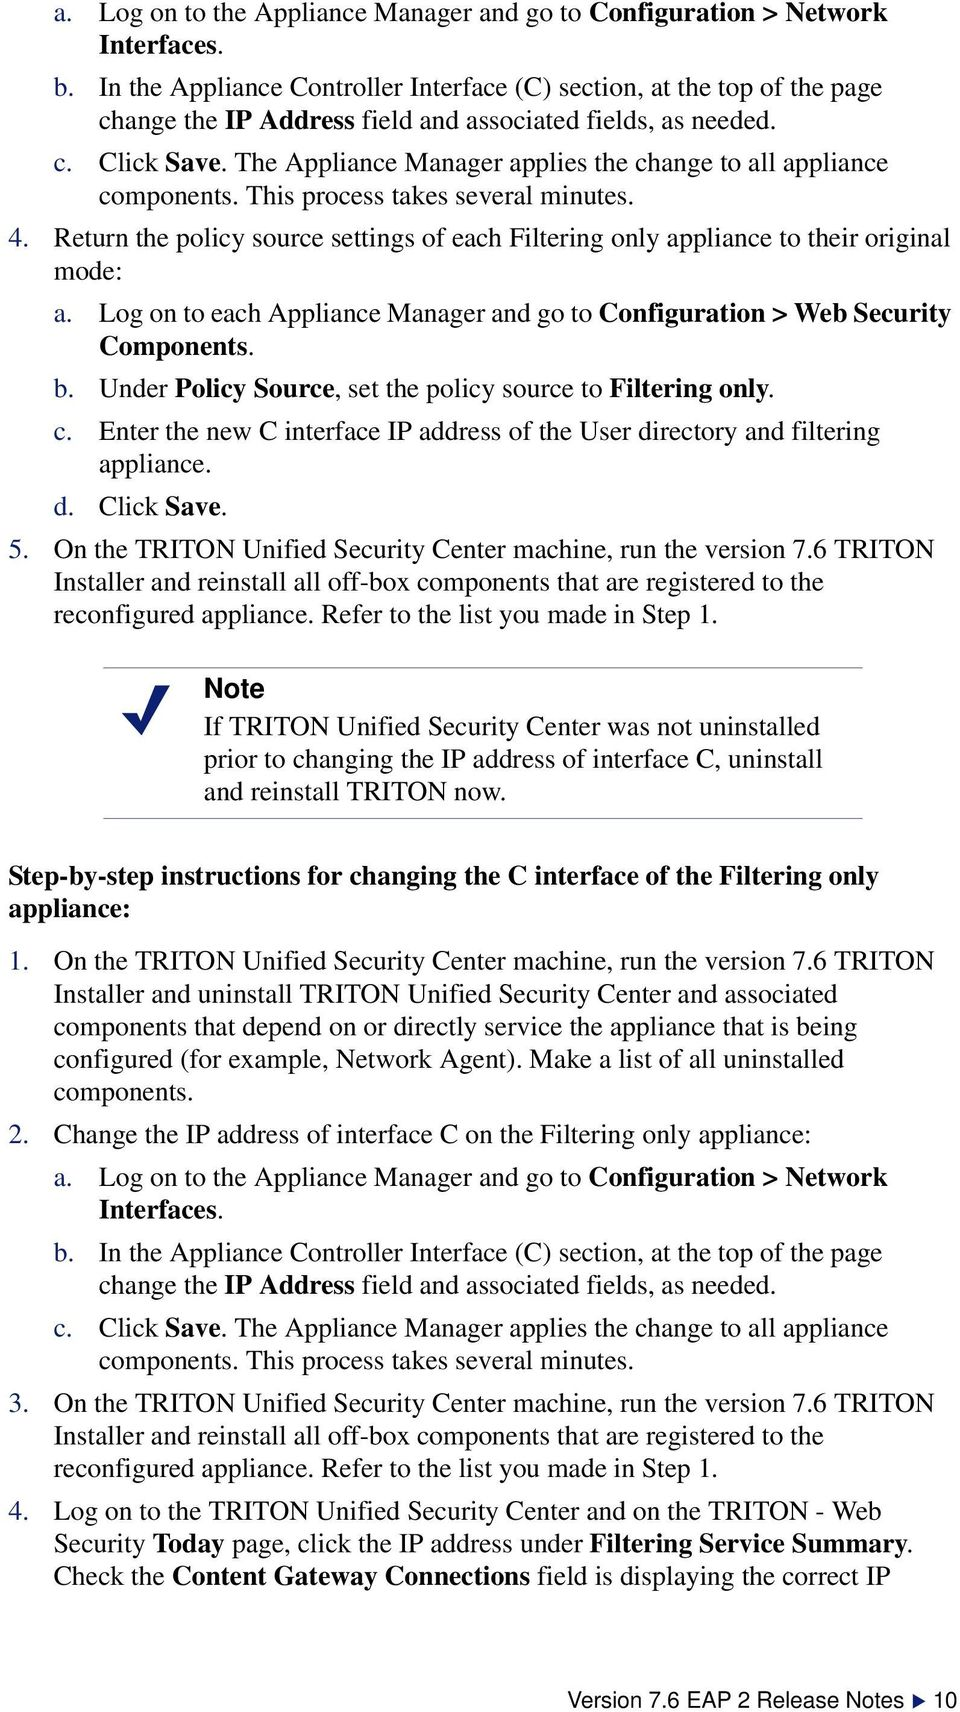 Enter the new C interface IP address of the User directory and filtering appliance. d. Click Save. 5. On the TRITON Unified Security Center machine, run the version 7.